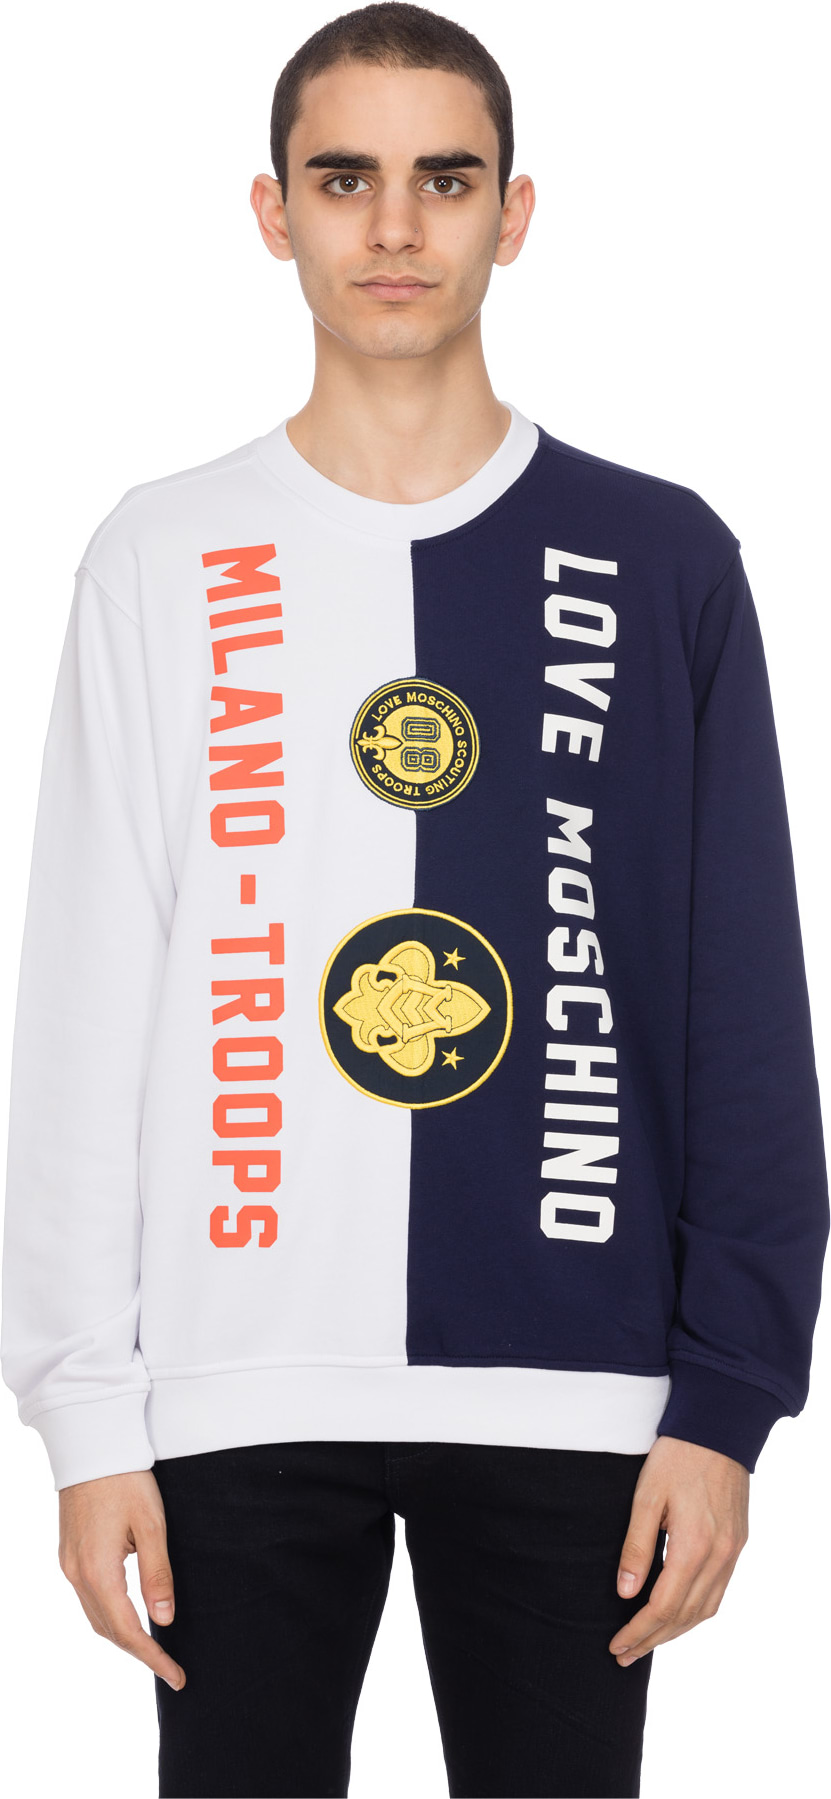 shop men love moschino milano troops pullover white navy sweaters pullover influence u. Black Bedroom Furniture Sets. Home Design Ideas